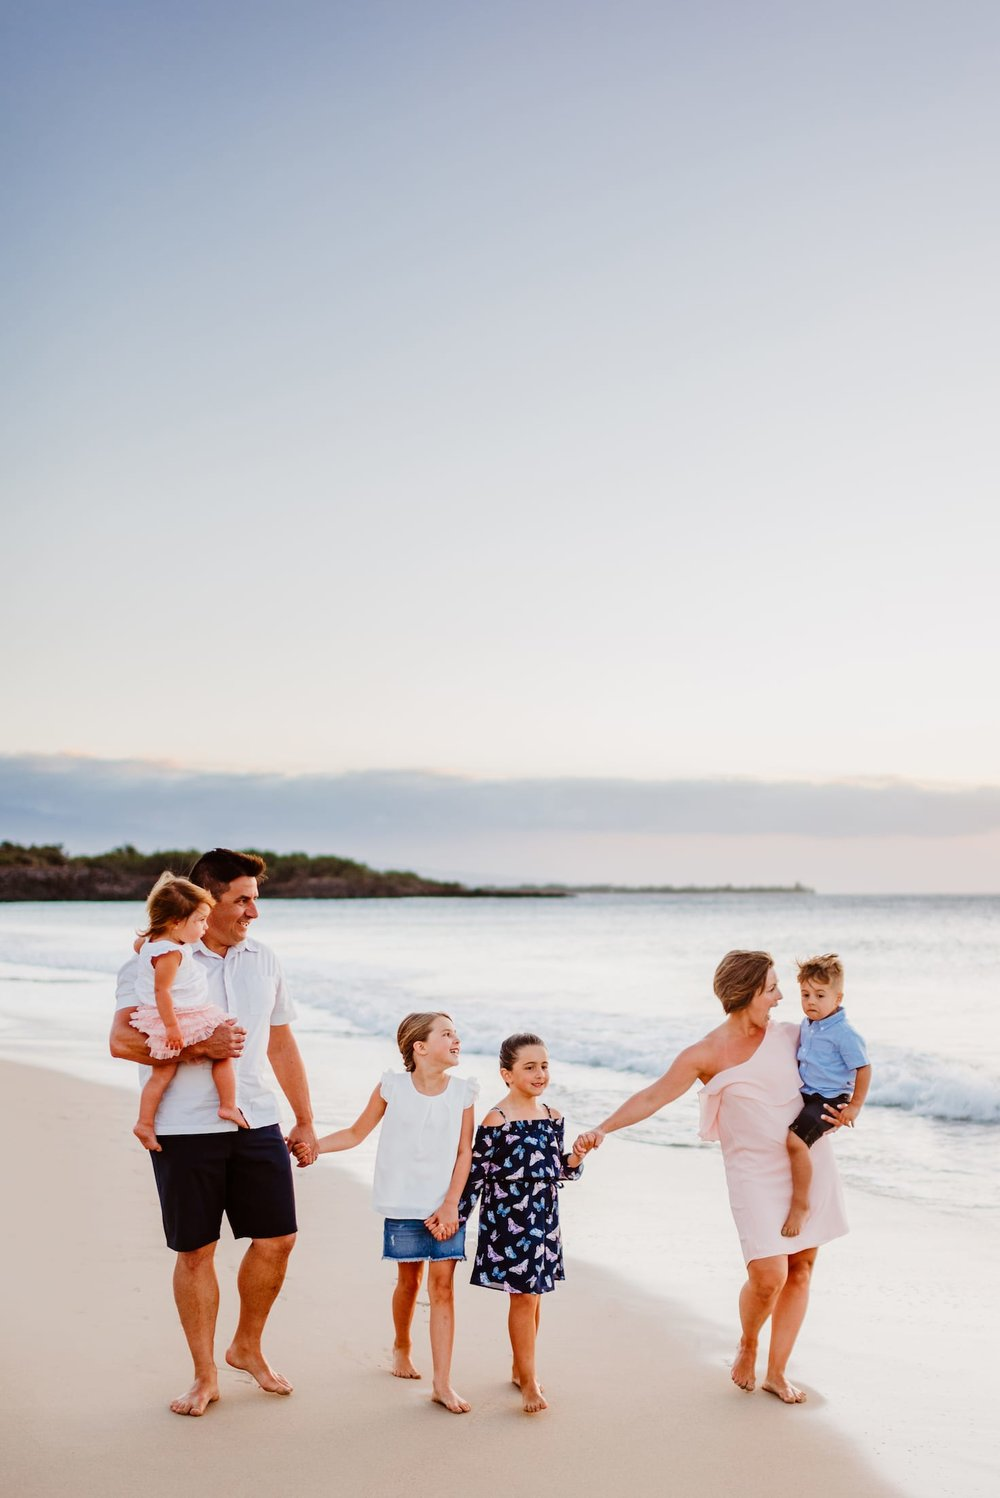 Big-Island-Family-Photography-Waikoloa-Hawaii-08.jpg